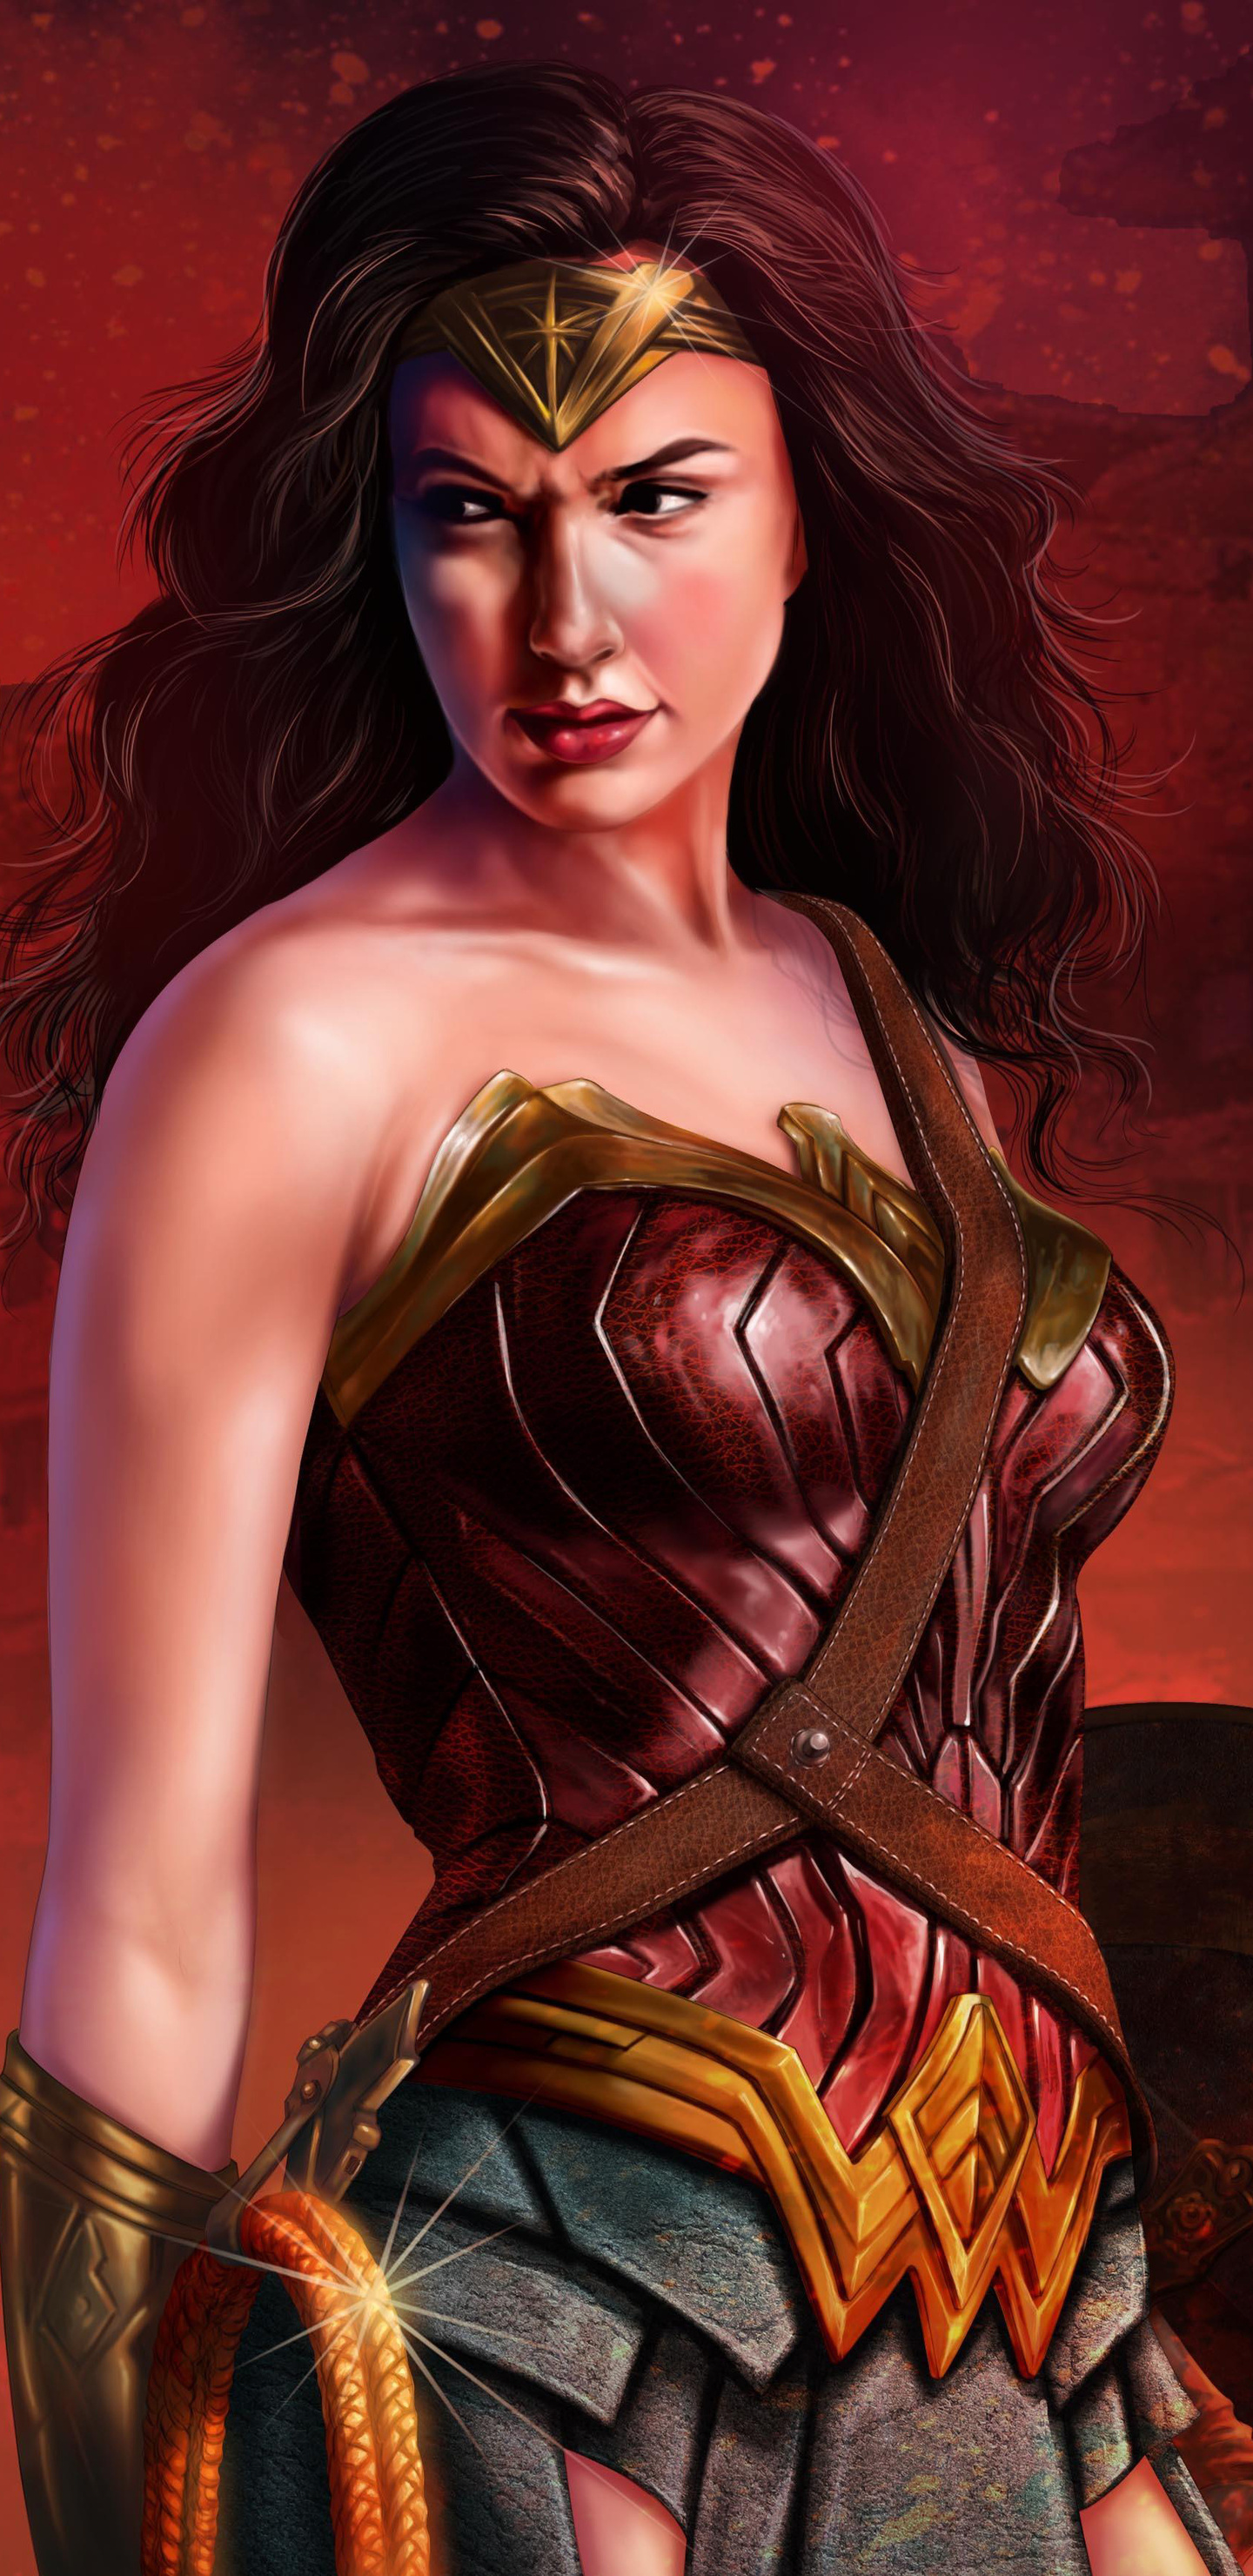 wonder-woman-5k-gal-gadot-art-2w.jpg